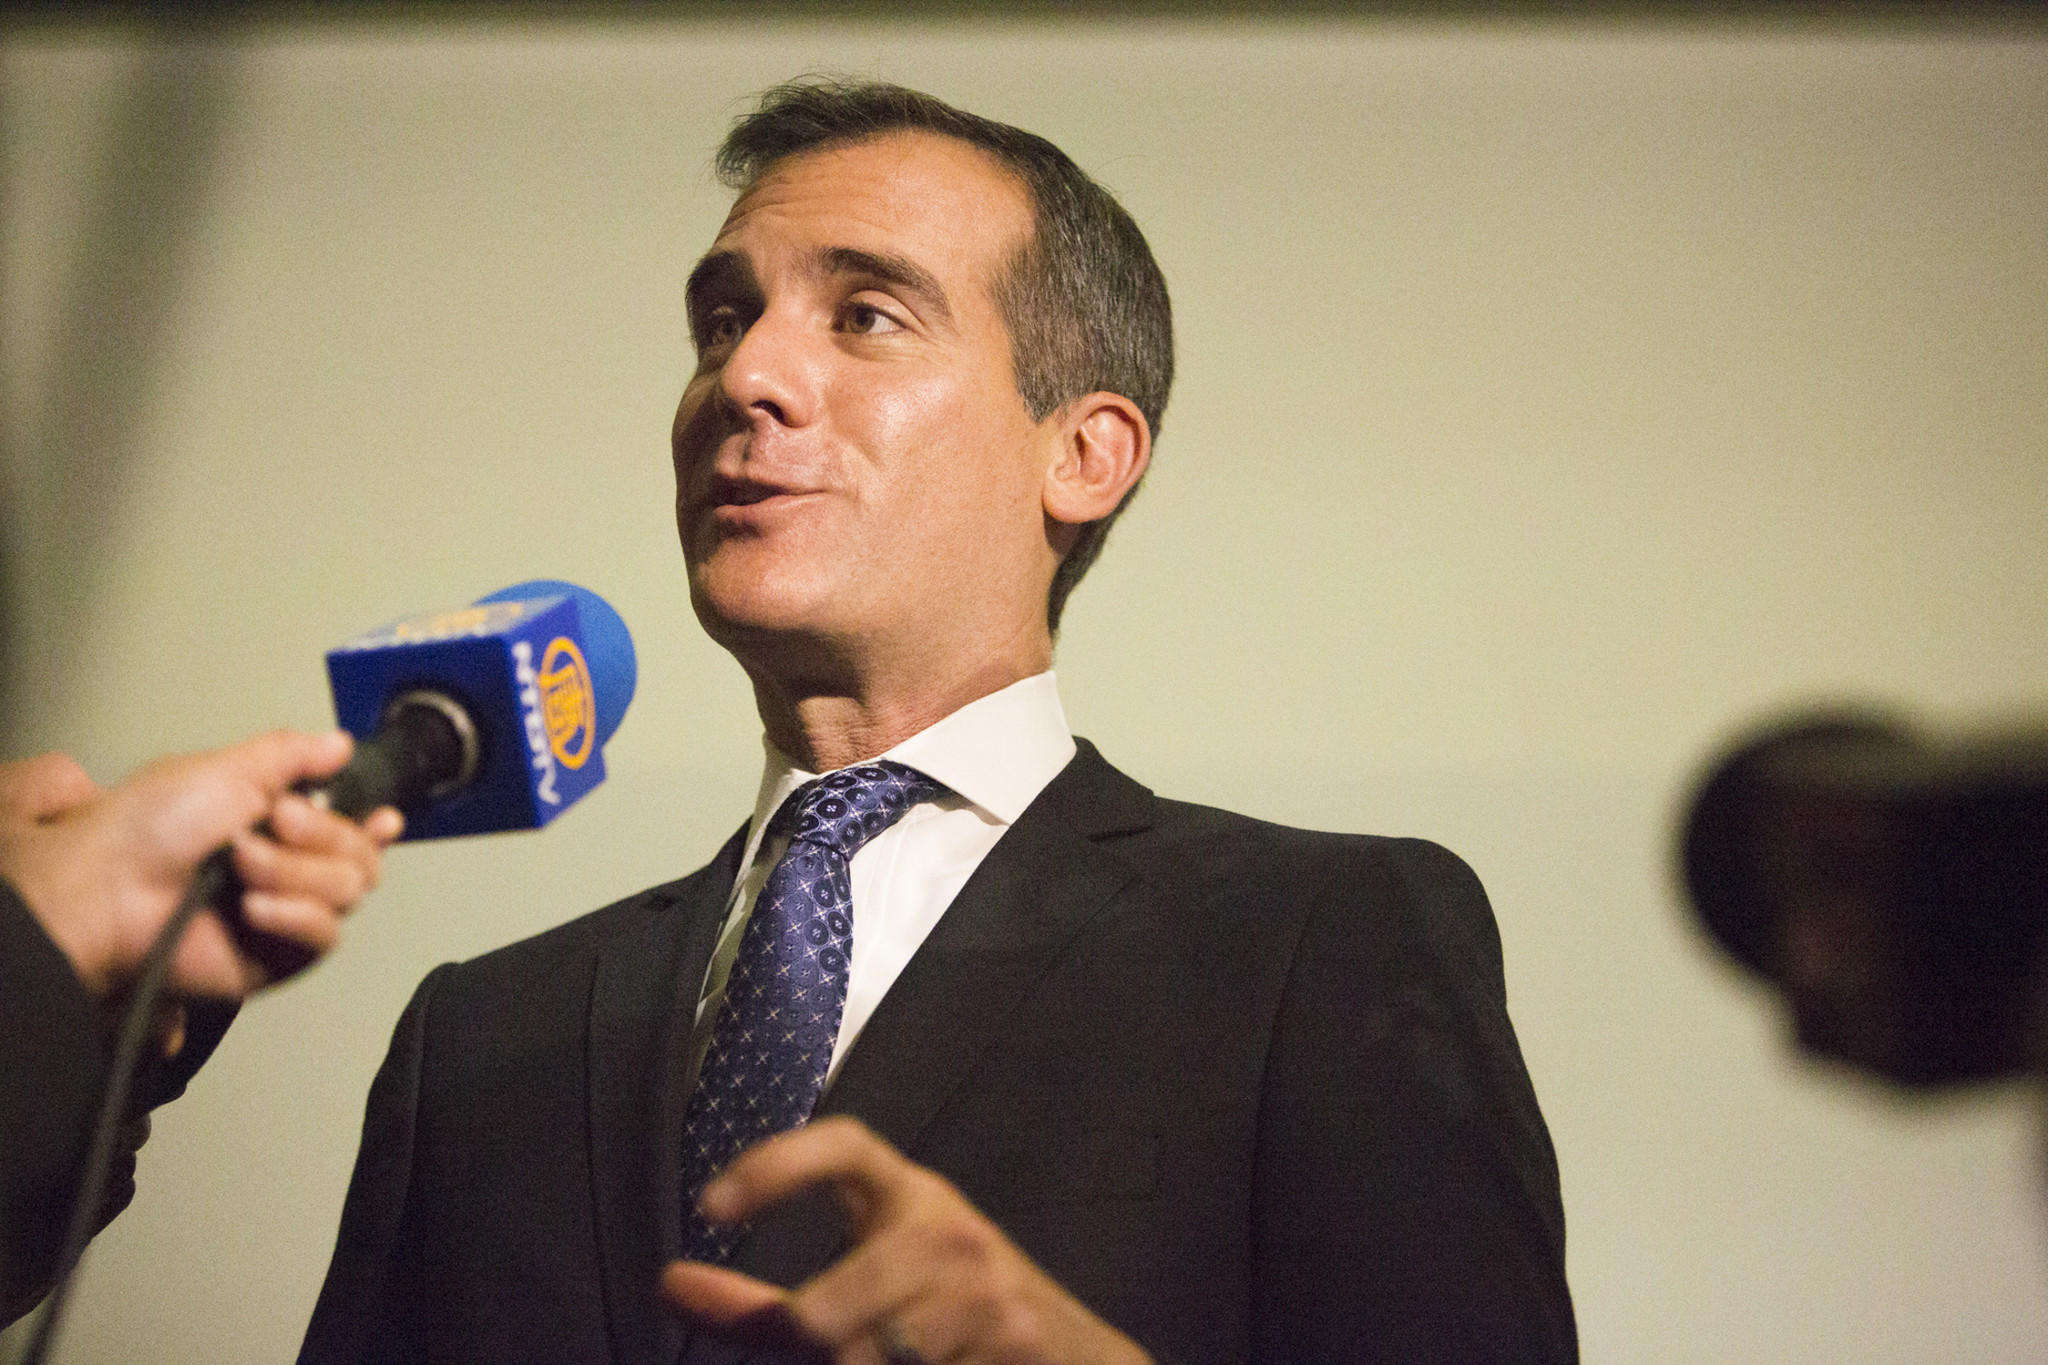 Los Angeles Mayor Eric Garcetti, shown at a news conference in January, is set to deliver his first State of the City speech late Thursday afternoon.